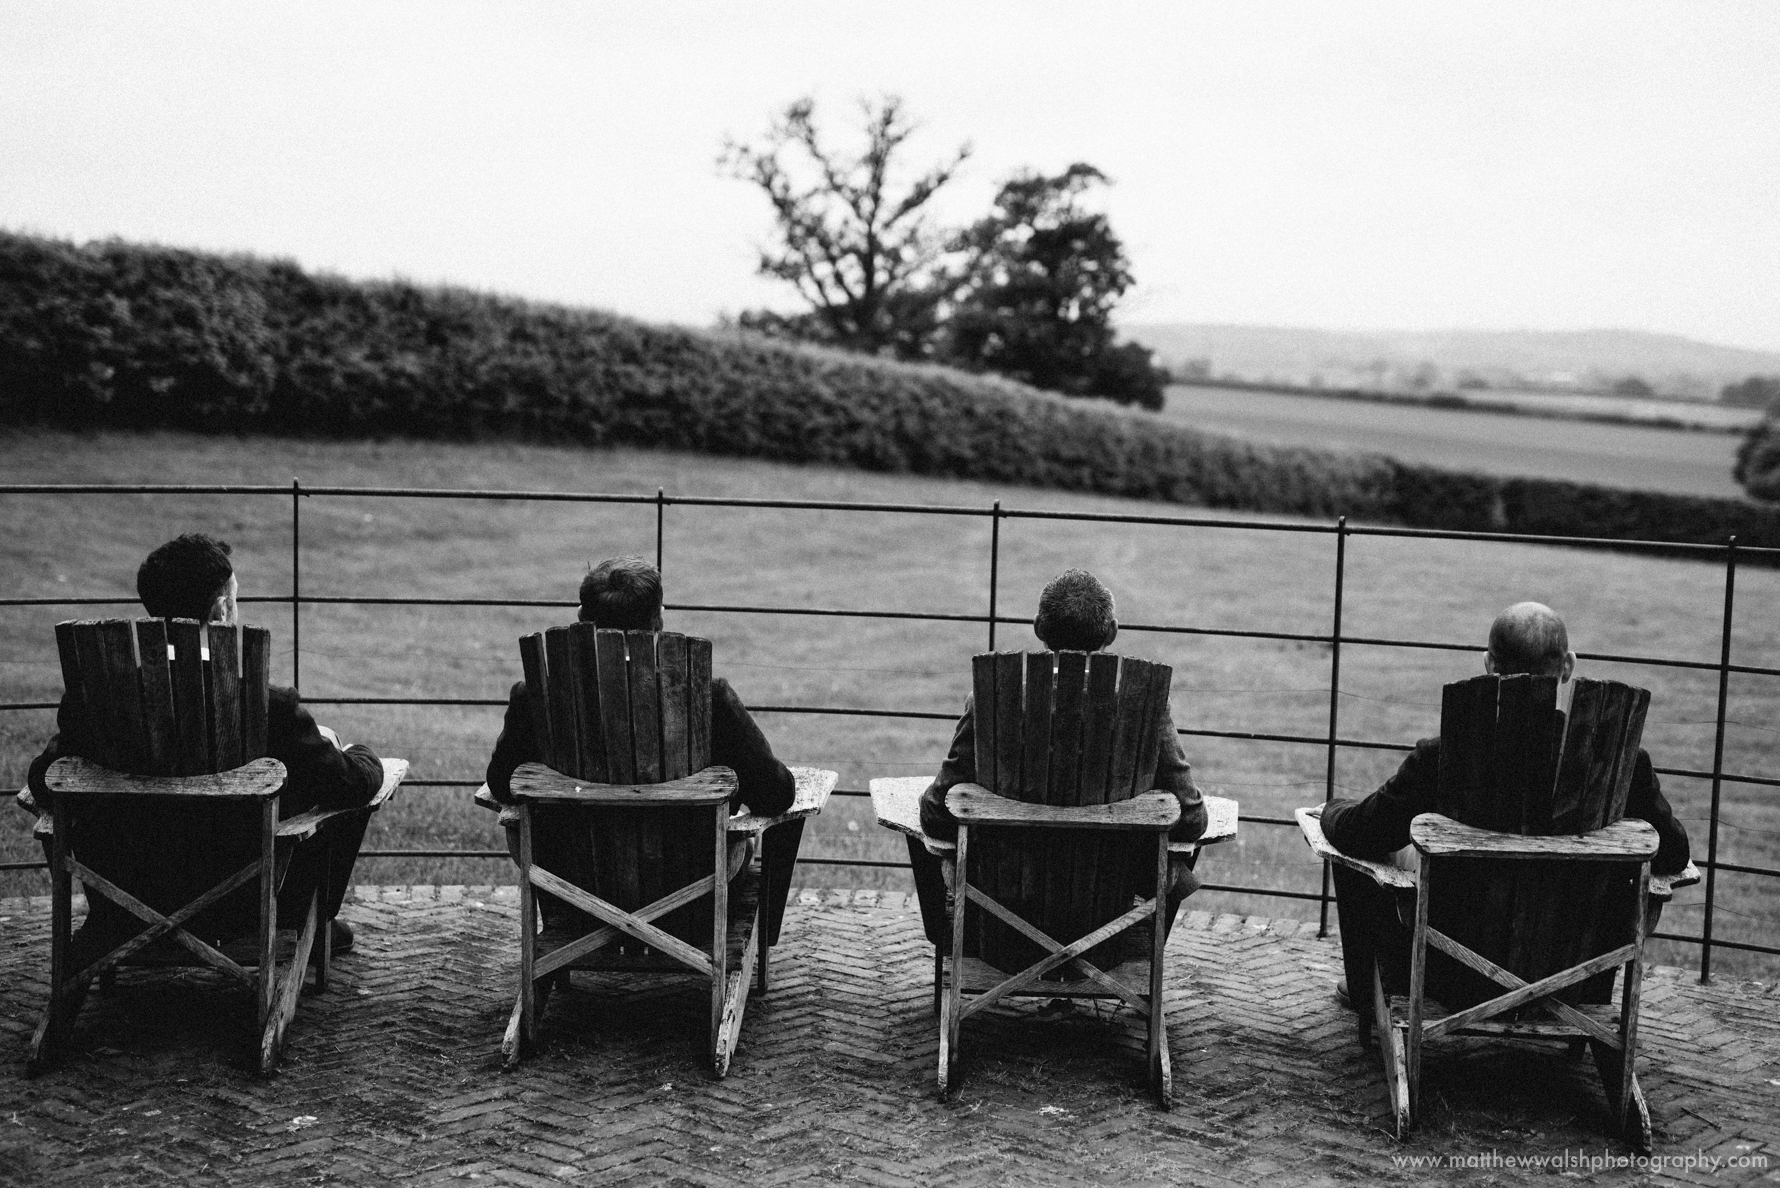 Groomsmen looking out over the Herefordshire landscape towards the black mountains